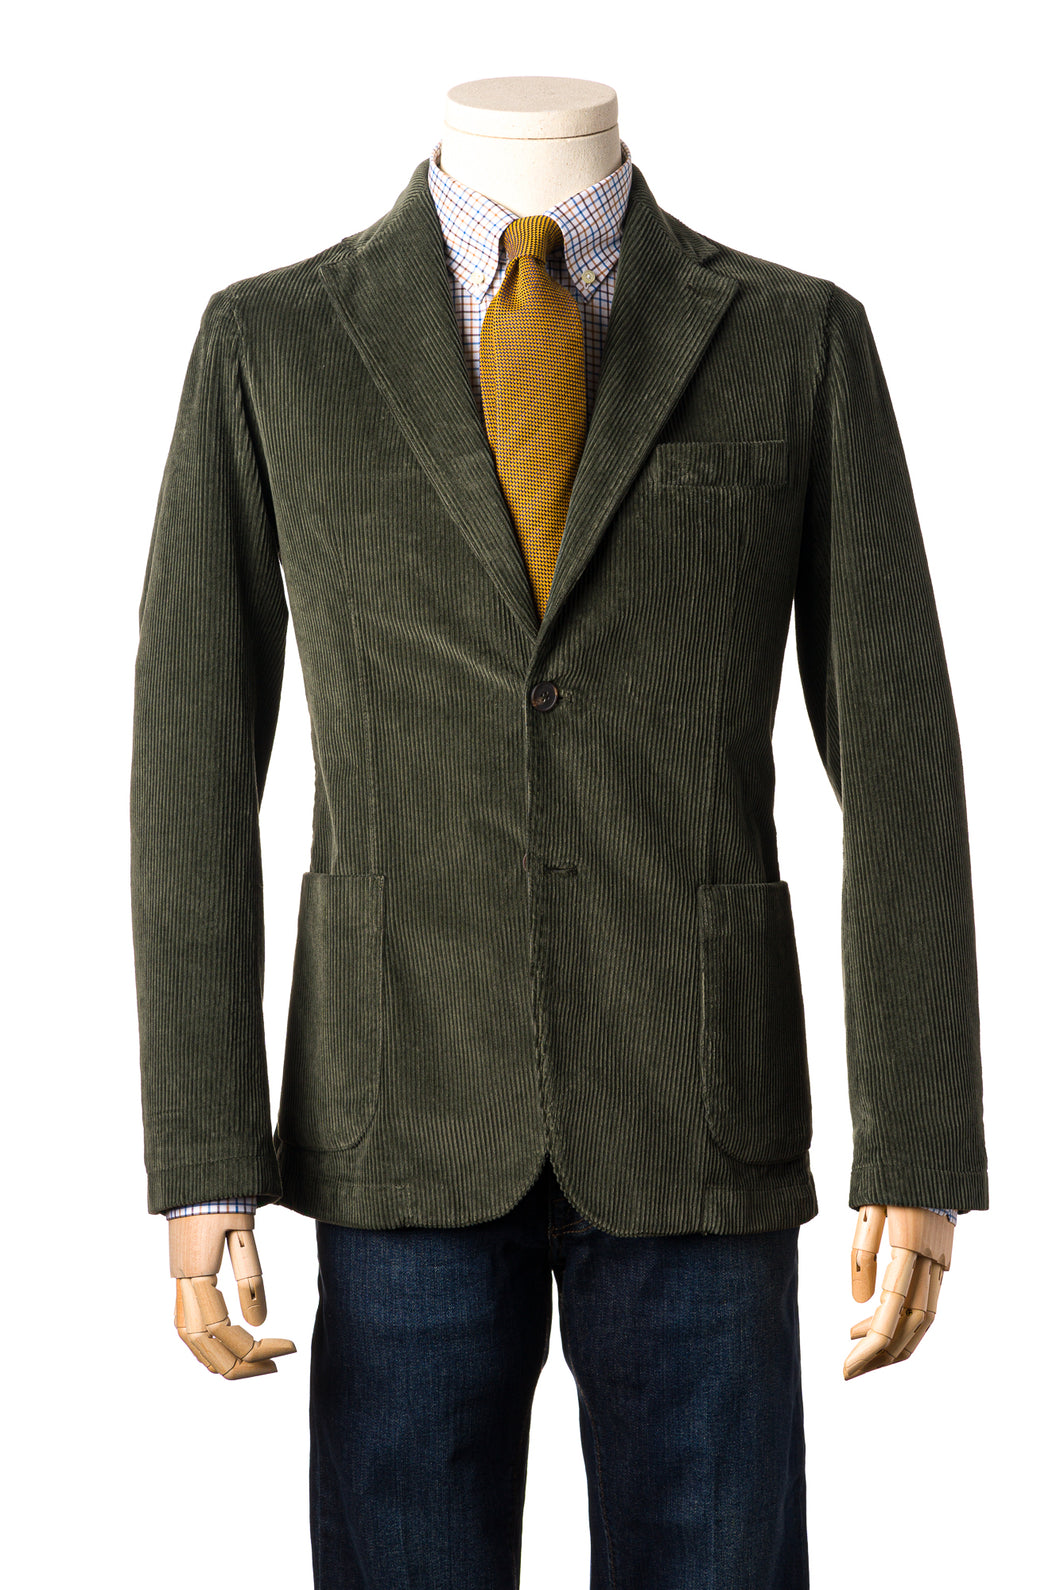 Olive corduroy soft tailored jacket with side patch pockets